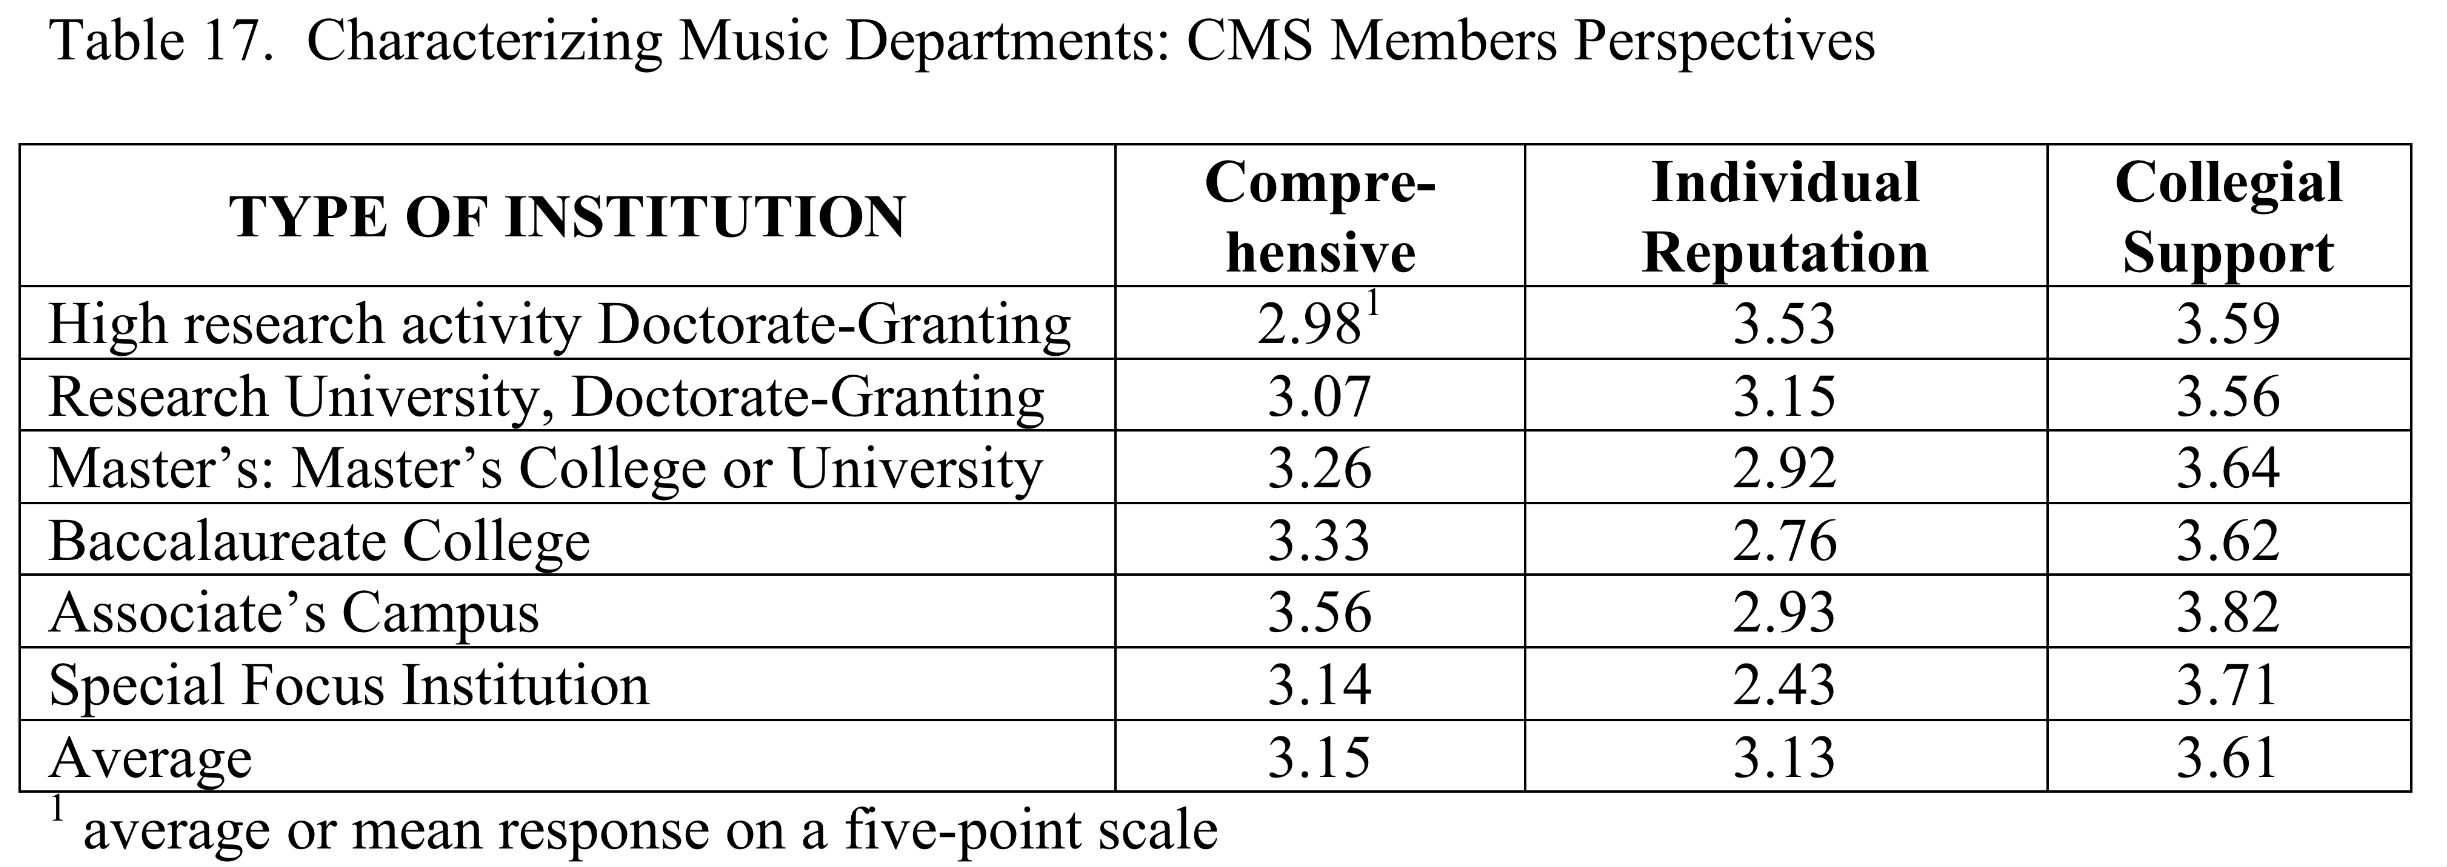 The Promotion and Tenure Process in CMS Members' Music Units